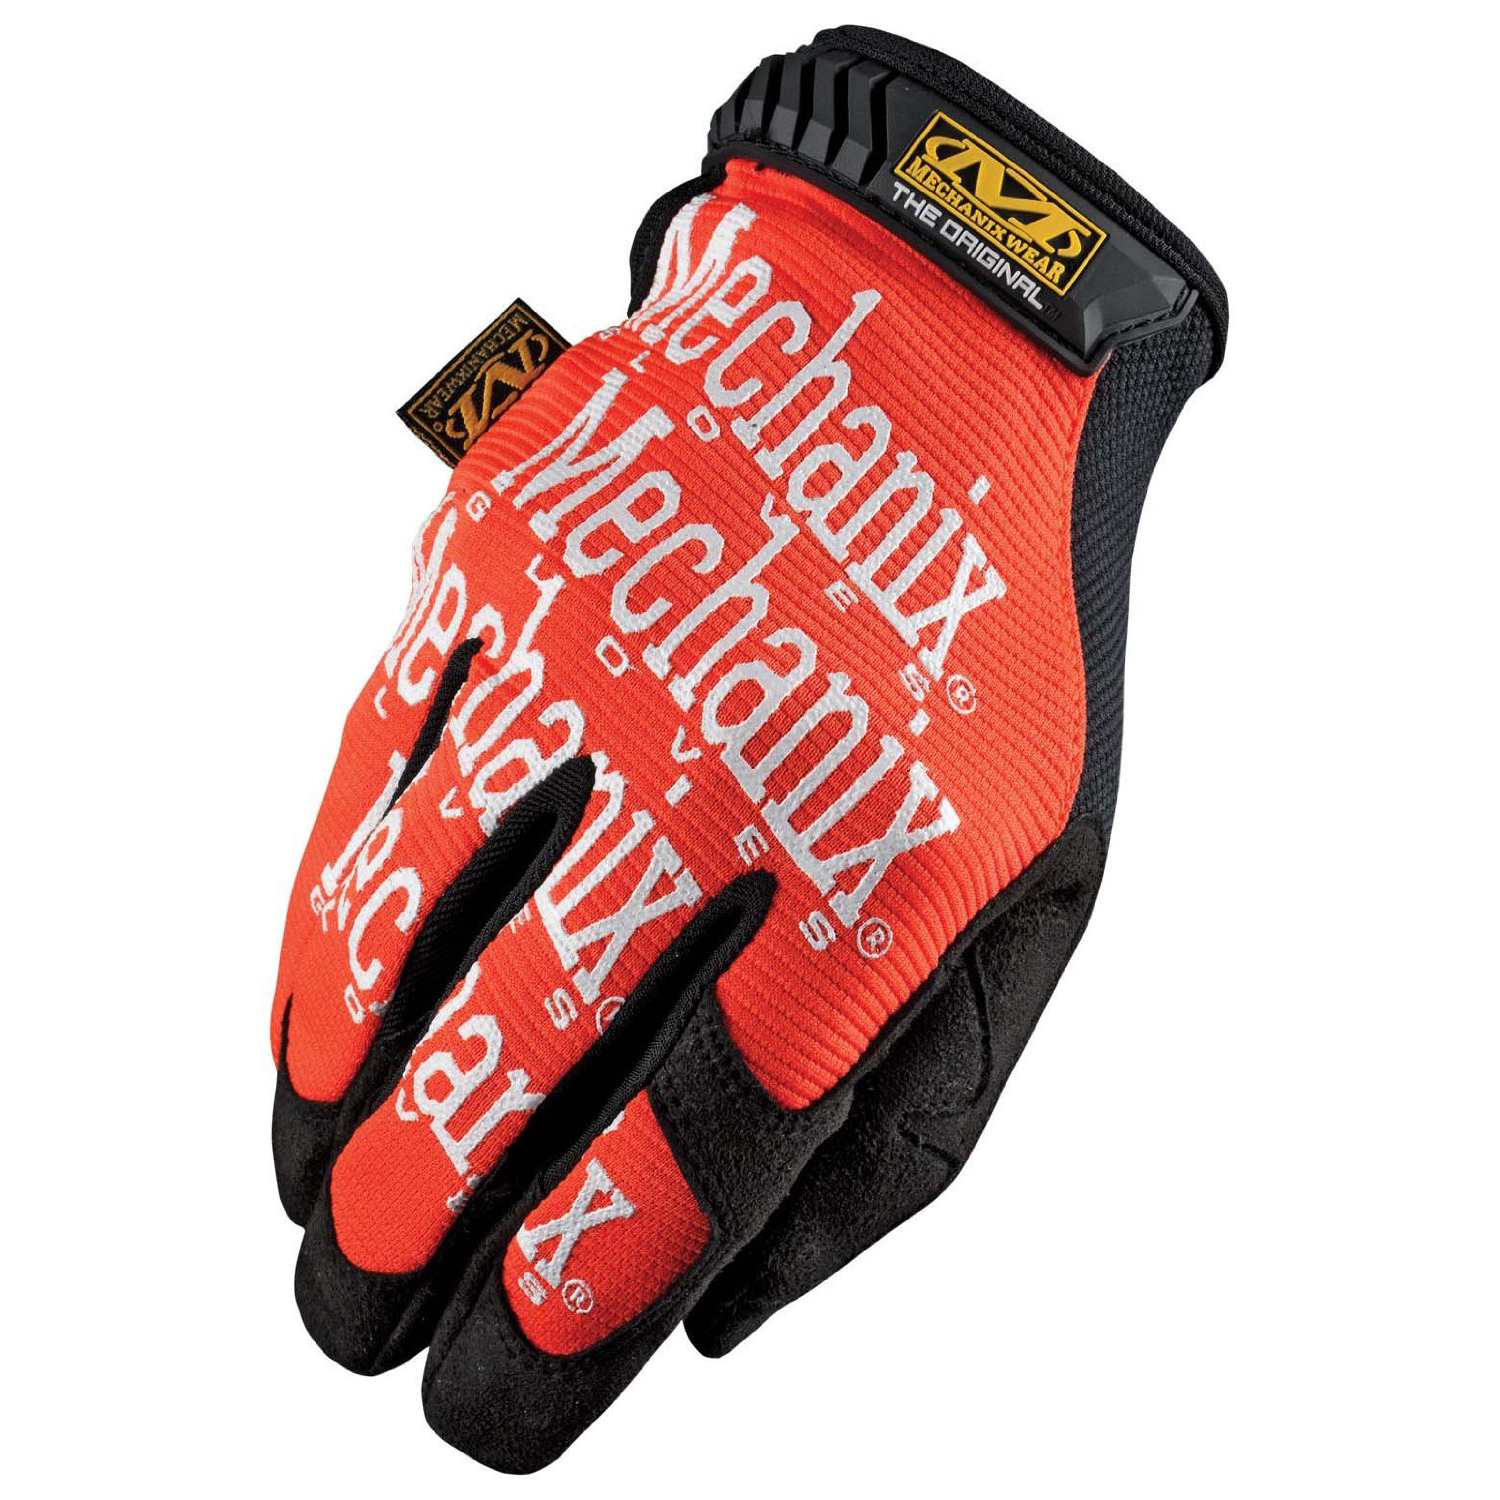 Ebay uk leather work gloves - Mechanix Wear The Original Covert Tactical Work Duty